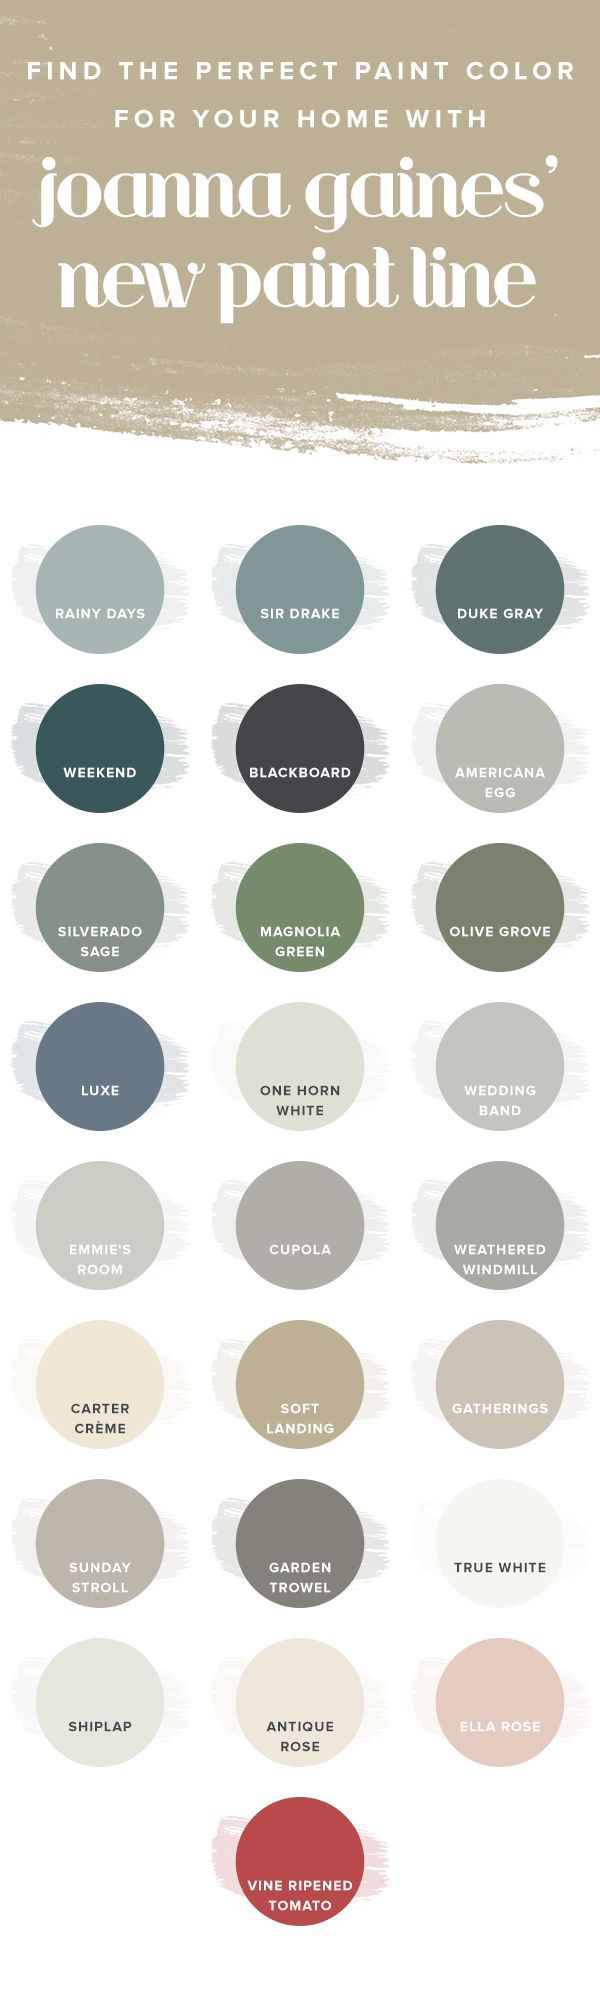 A fresh coat of paint might just be the secret to instantly making your home feel refreshed. Joanna Gains from Fixer Upper has a new paint line with beautiful color ideas for your home. From the living room to the bedroom to the exterior, take a look for some paint color ideas and inspiration.